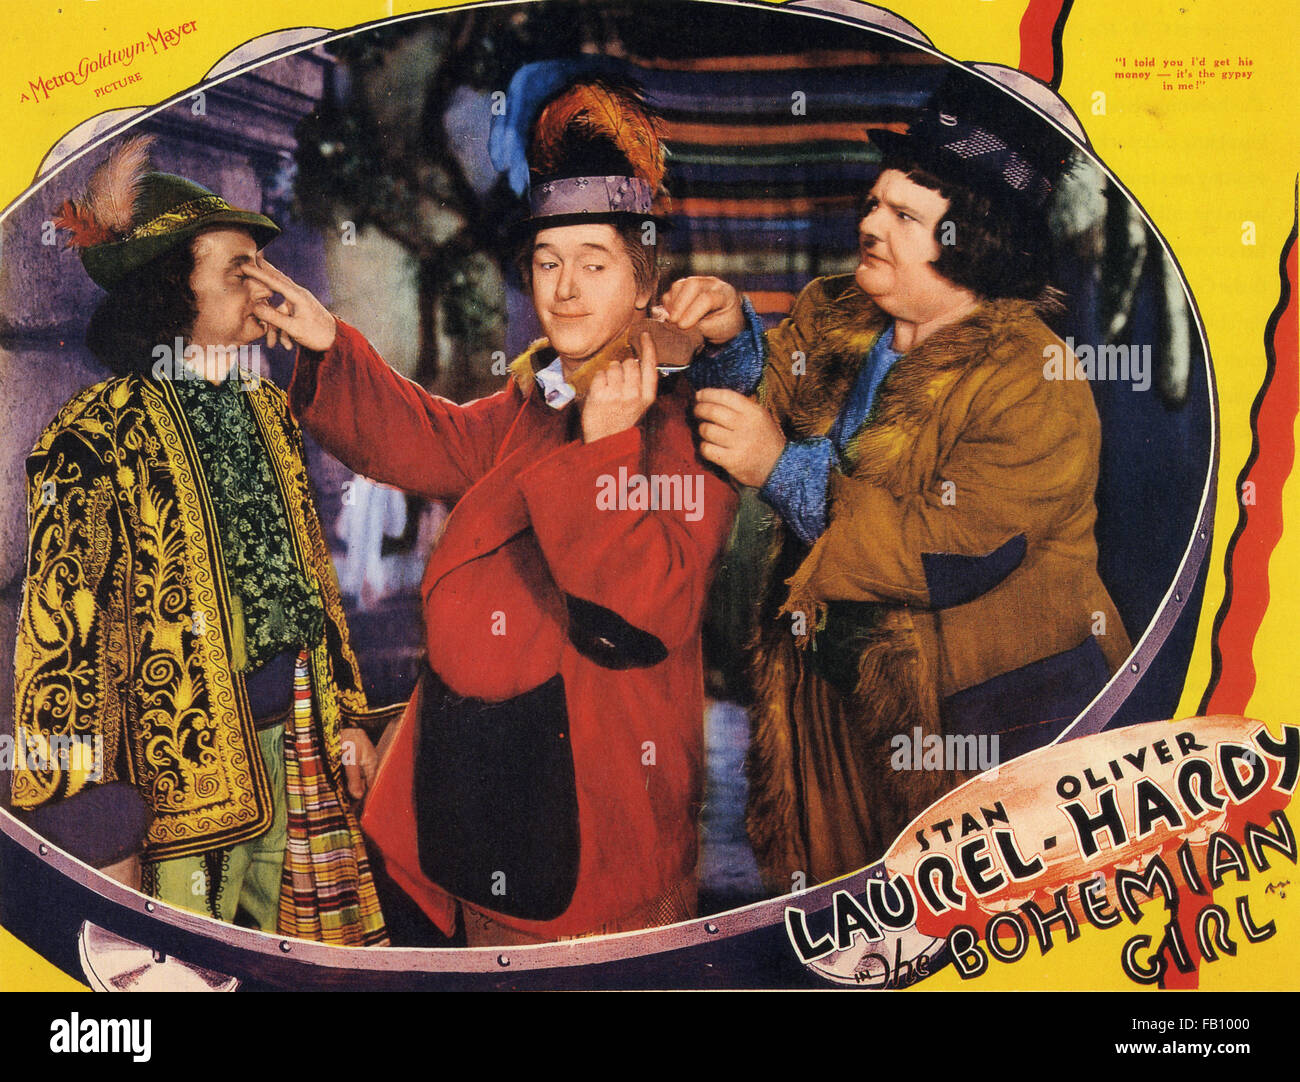 THE BOHEMIAN GIRL 1936 MGM film with Laurel and Hardy - Stock Image